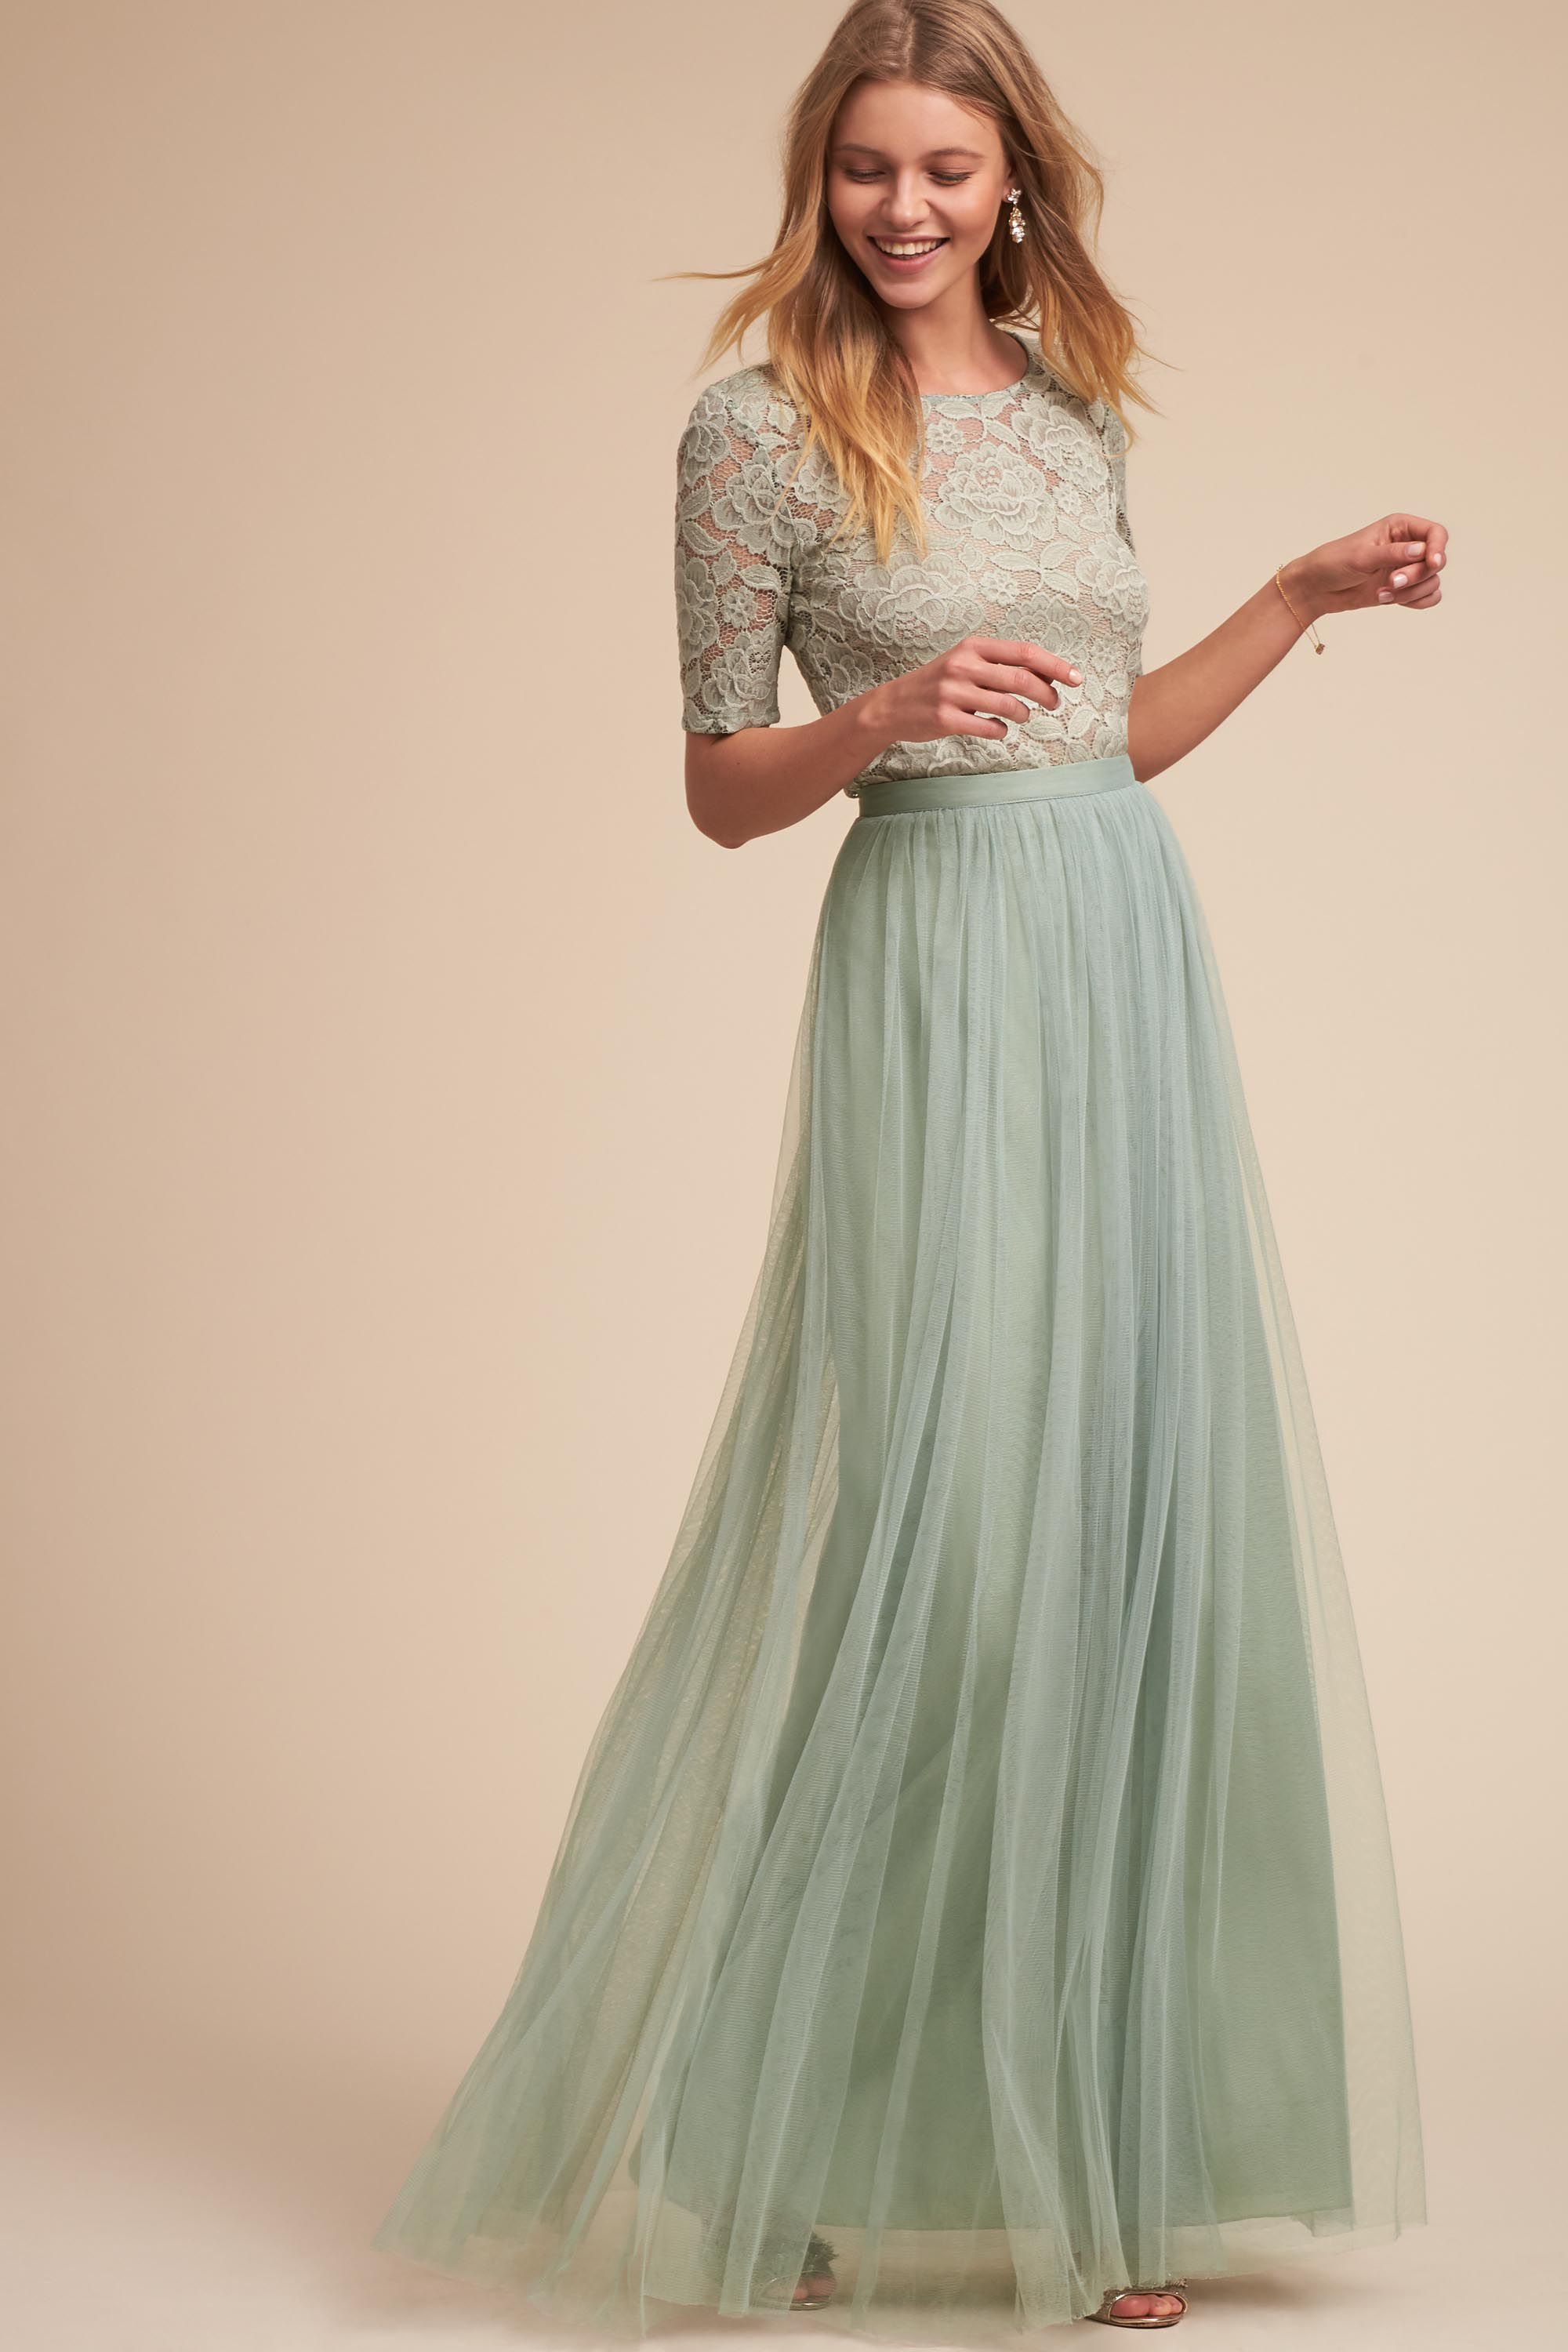 Courthouse wedding dresses under $100  Jive Top u Louise Tulle Skirt from BHLDN  rings  Pinterest